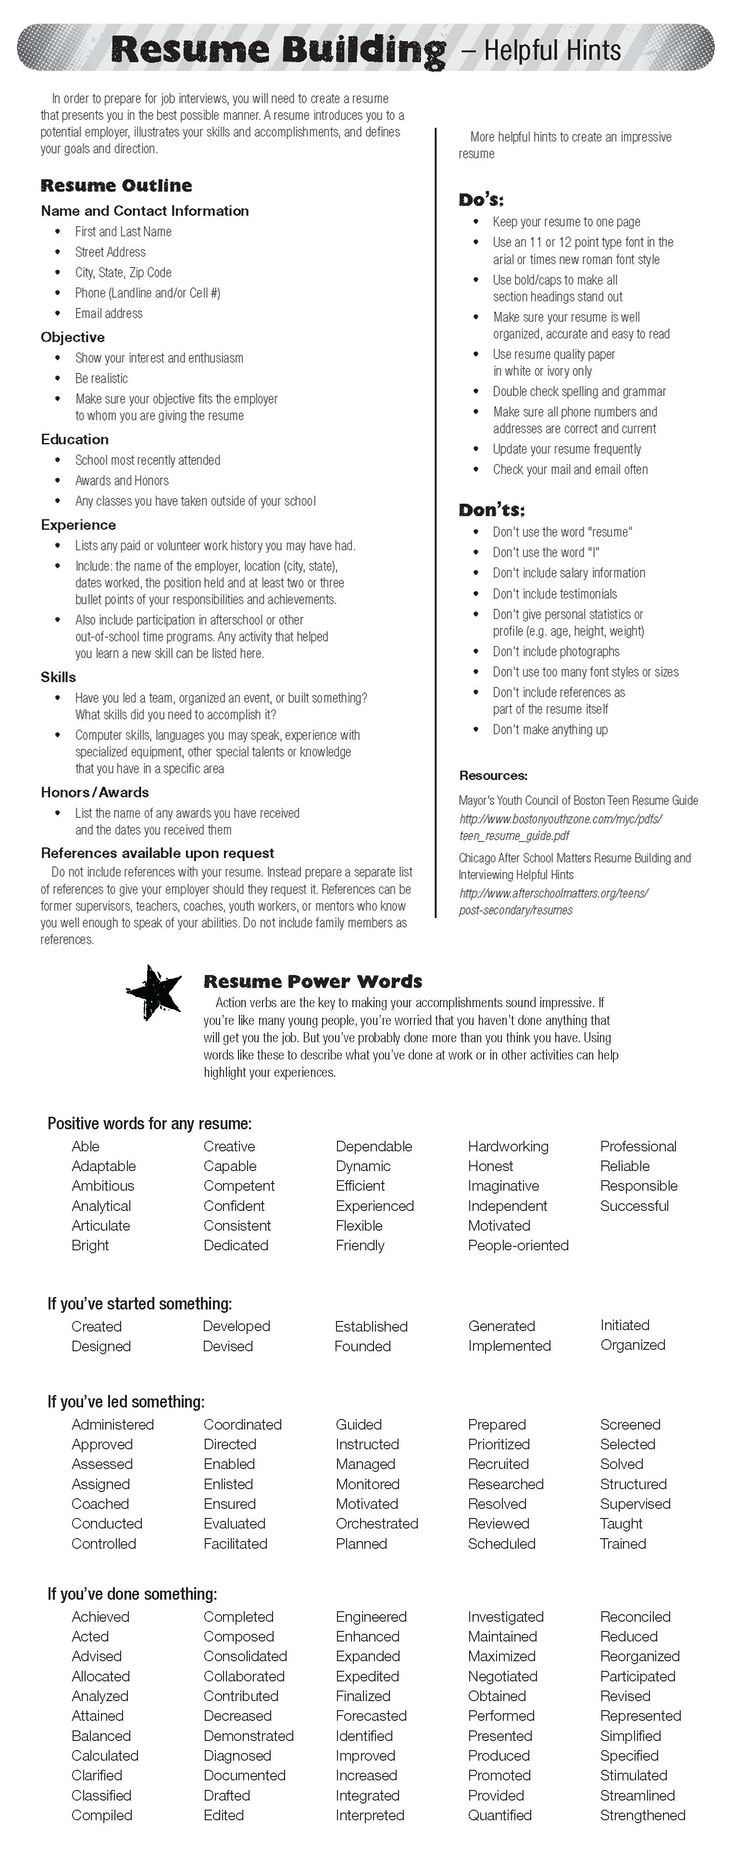 Opposenewapstandardsus  Fascinating  Ideas About Resume On Pinterest  Cv Format Resume Cv And  With Interesting  Ideas About Resume On Pinterest  Cv Format Resume Cv And Resume Templates With Adorable Parse Resume Meaning Also Interior Design Resume Examples In Addition Good Words To Use In Resume And How To Present Resume As Well As Resume Objective Necessary Additionally Good Resume Builder From Pinterestcom With Opposenewapstandardsus  Interesting  Ideas About Resume On Pinterest  Cv Format Resume Cv And  With Adorable  Ideas About Resume On Pinterest  Cv Format Resume Cv And Resume Templates And Fascinating Parse Resume Meaning Also Interior Design Resume Examples In Addition Good Words To Use In Resume From Pinterestcom